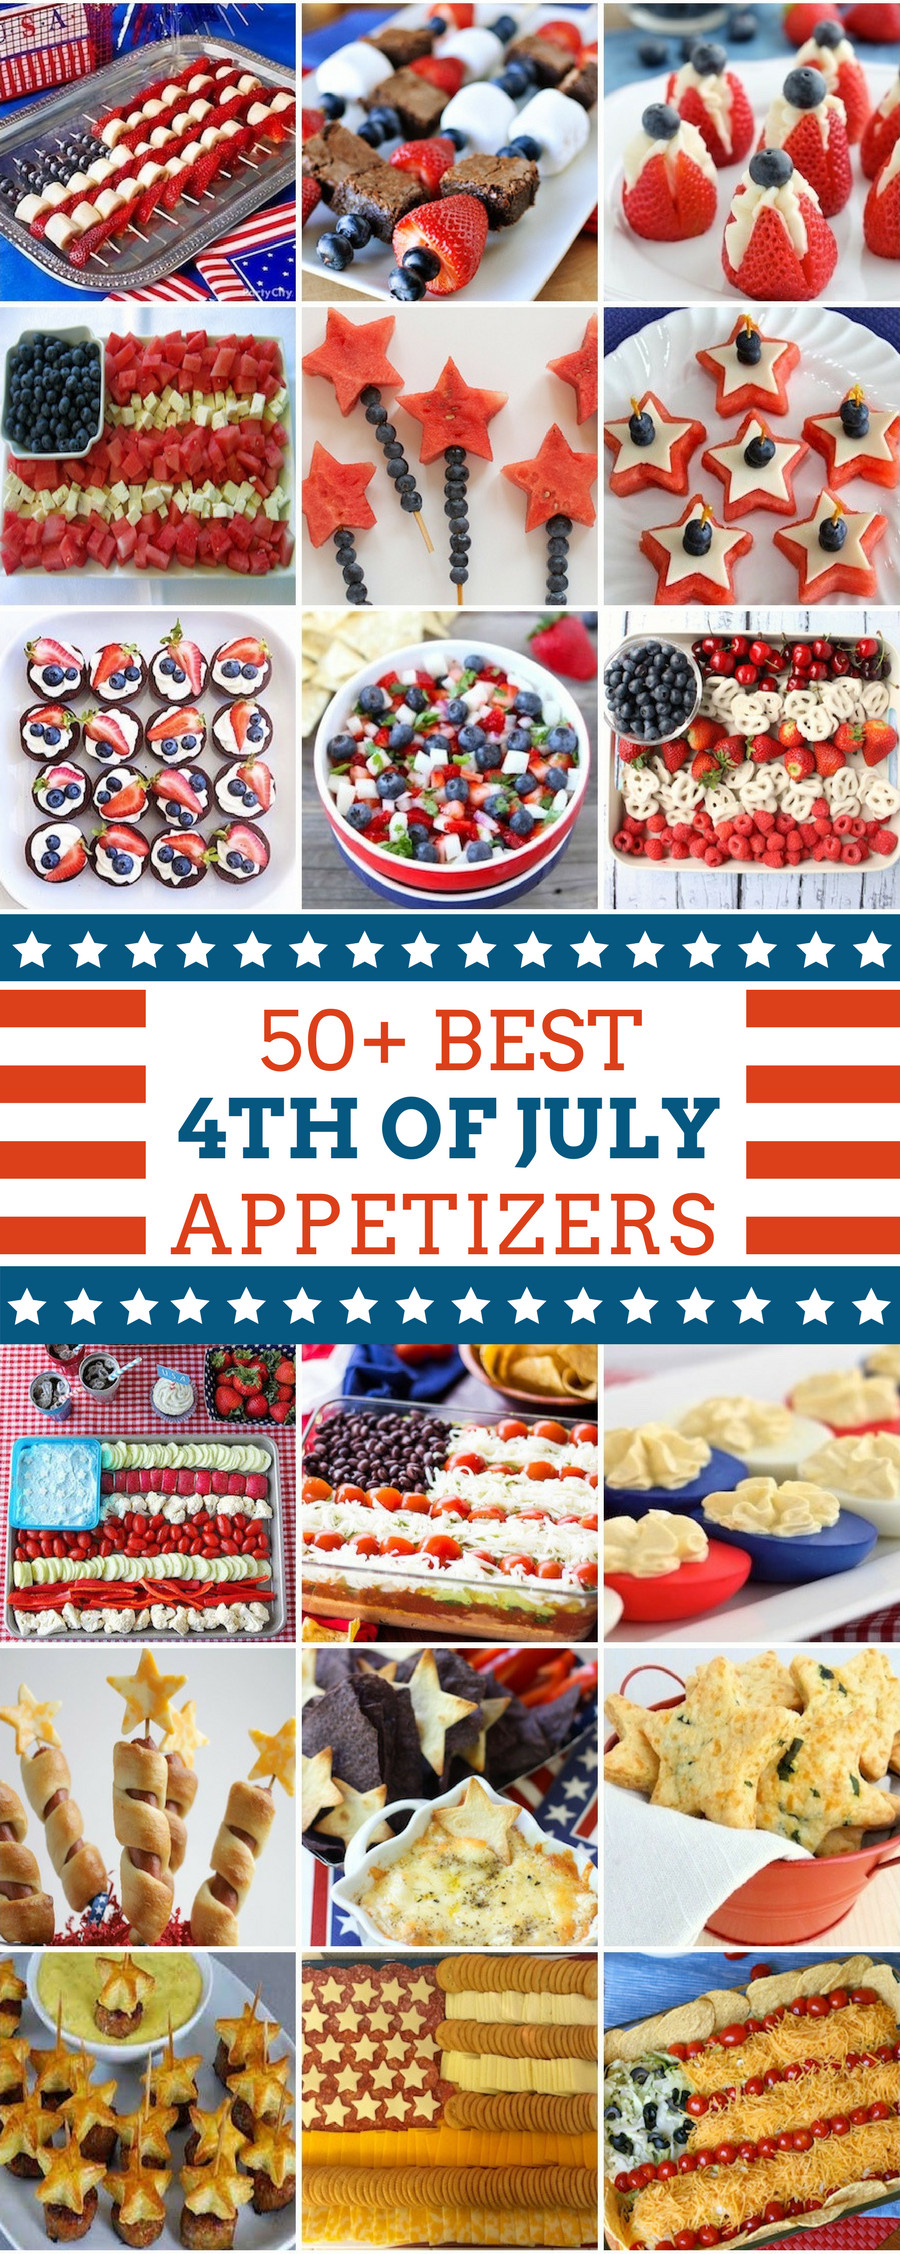 Best 4th Of July Appetizers 20 Of the Best Ideas for 50 Best 4th Of July Appetizers Prudent Penny Pincher